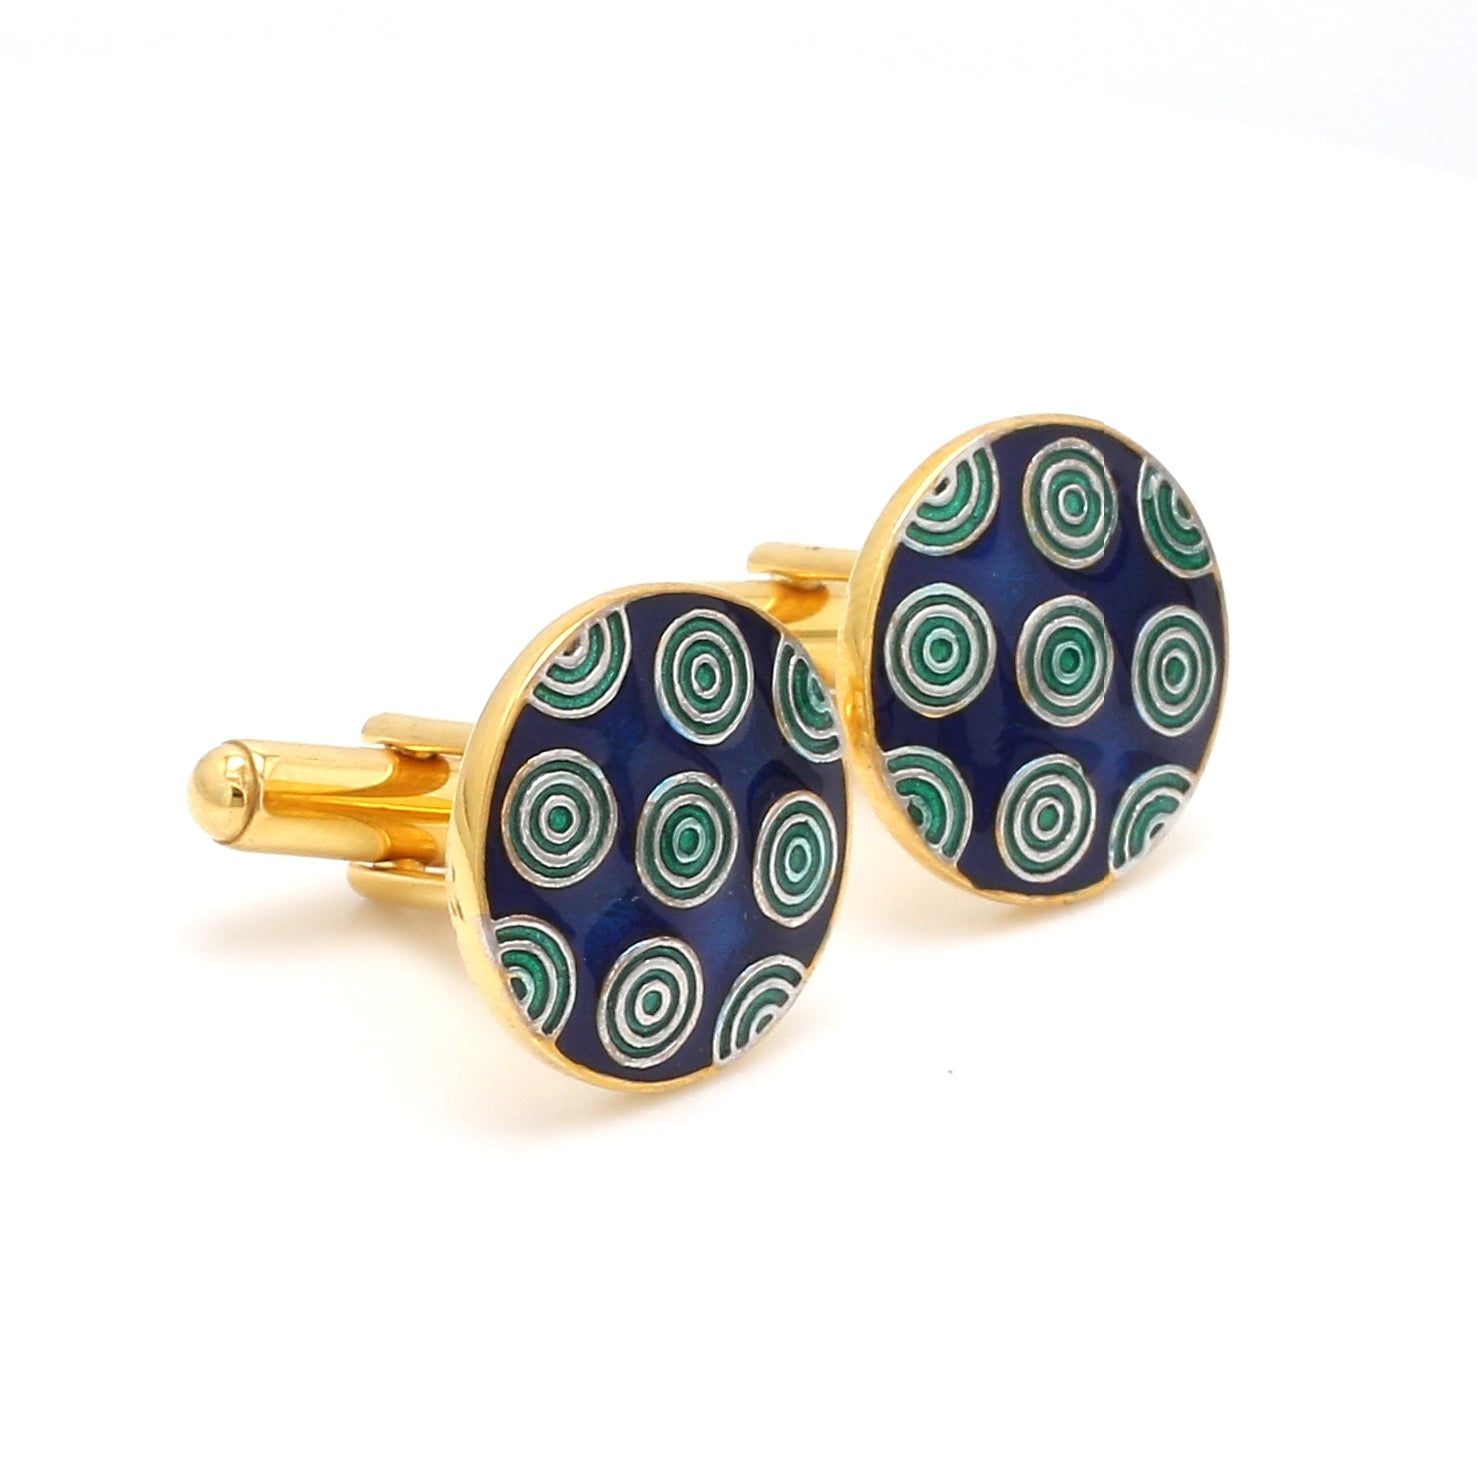 Side View of 925 Silver Cufflinks for Men with Blue & Green Enamel JL AGC 20